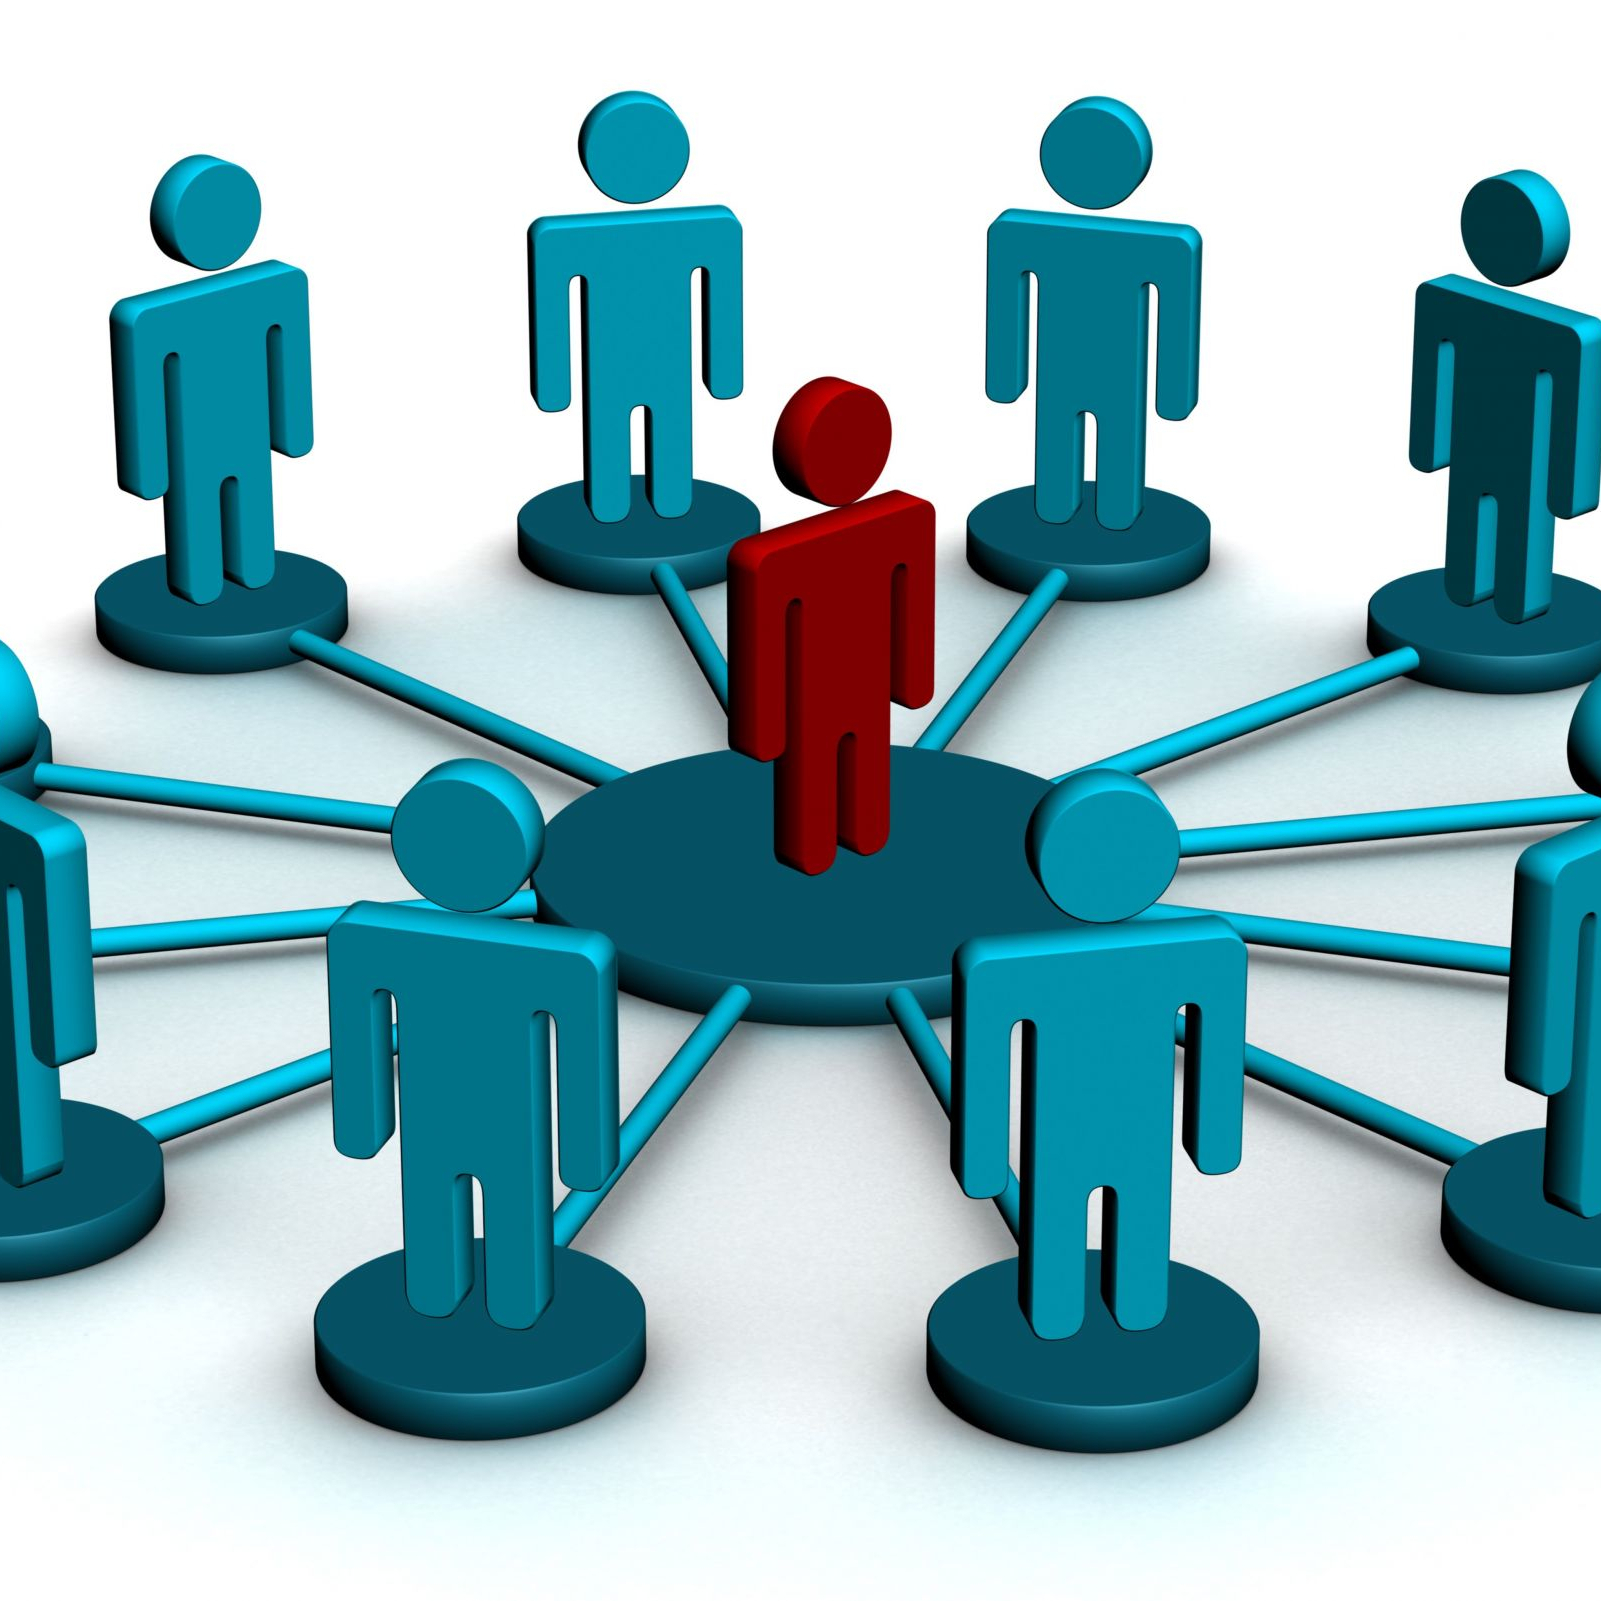 Guest view how knowledge. Collaboration clipart support system